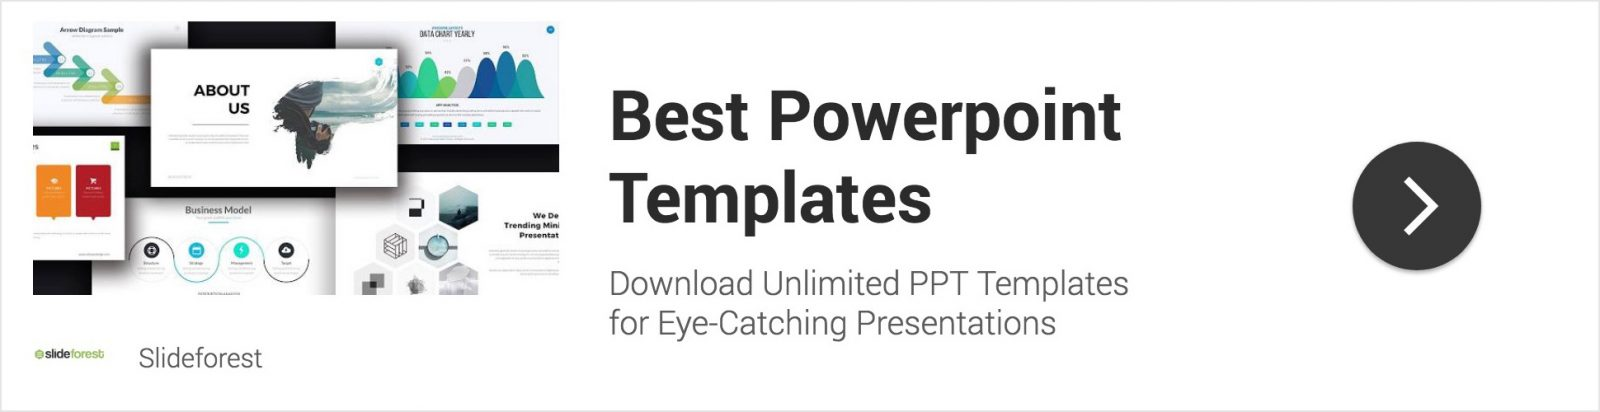 25 free business powerpoint templates for presentations business powerpoint templates cheaphphosting Images